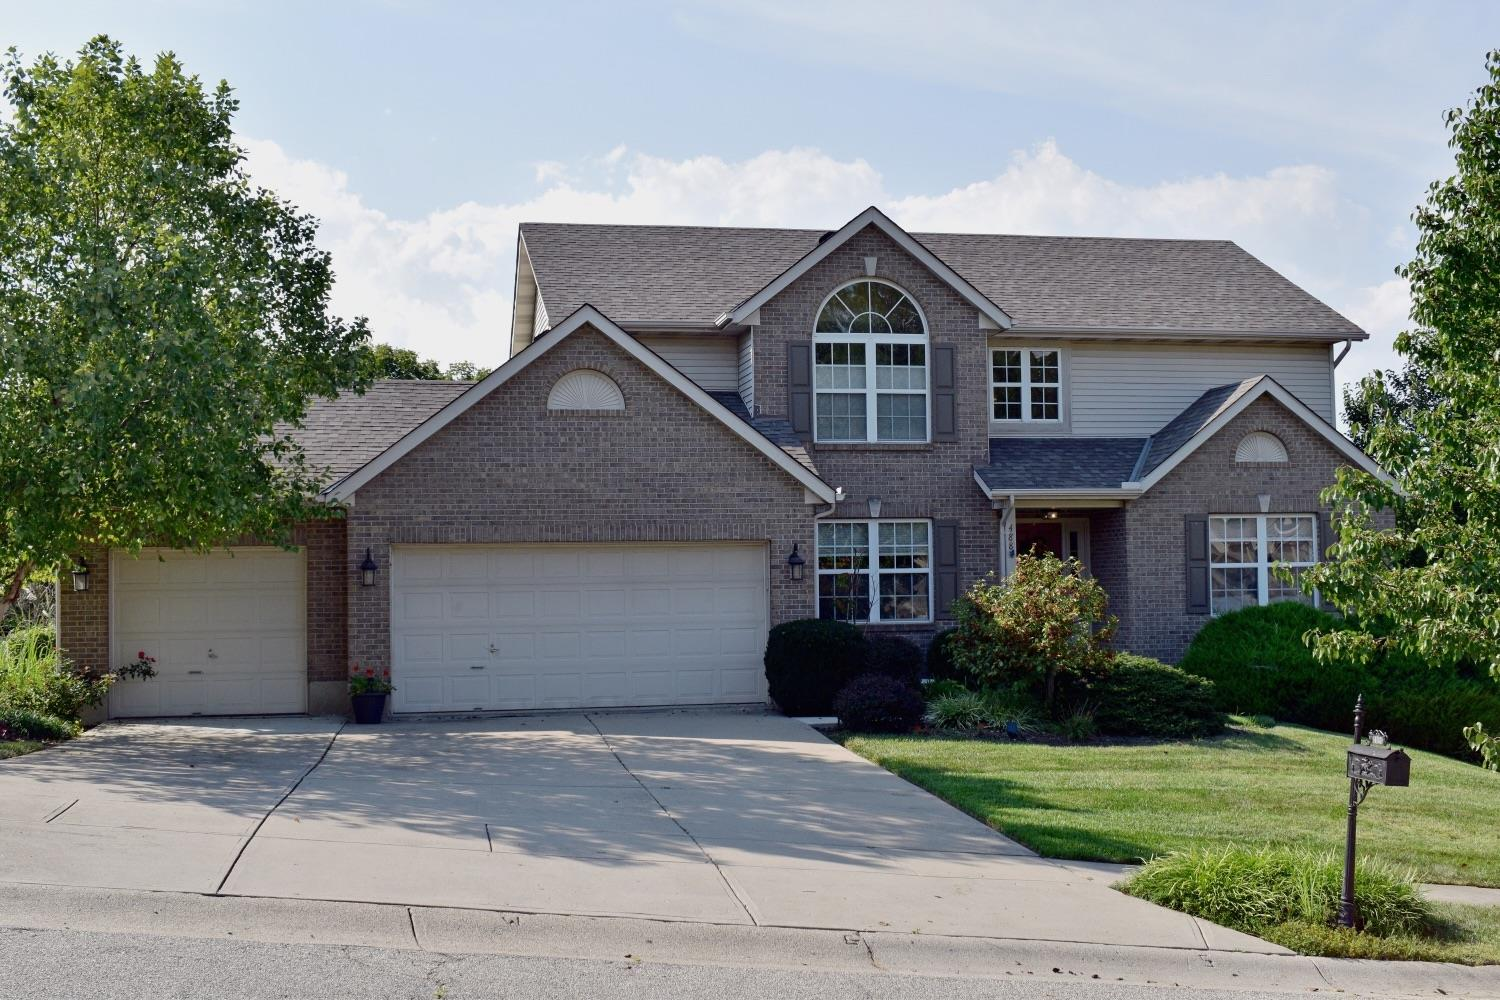 Property for sale at 488 St Thomas Court, Fairfield,  OH 45014